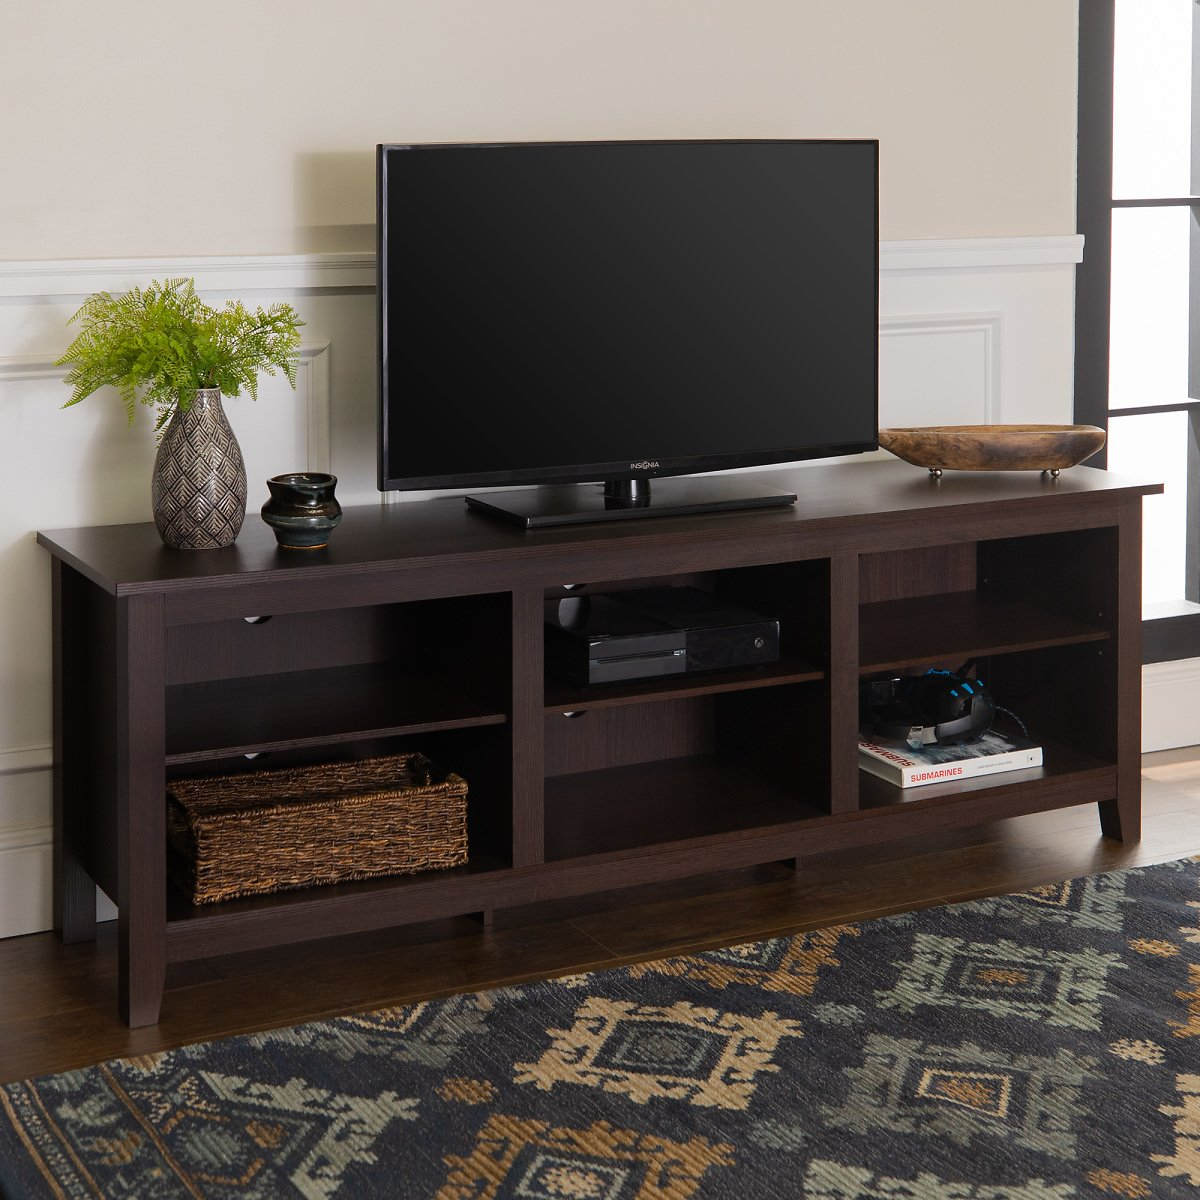 Manor Park Wood TV Media Storage Stand for TVs Up to 78